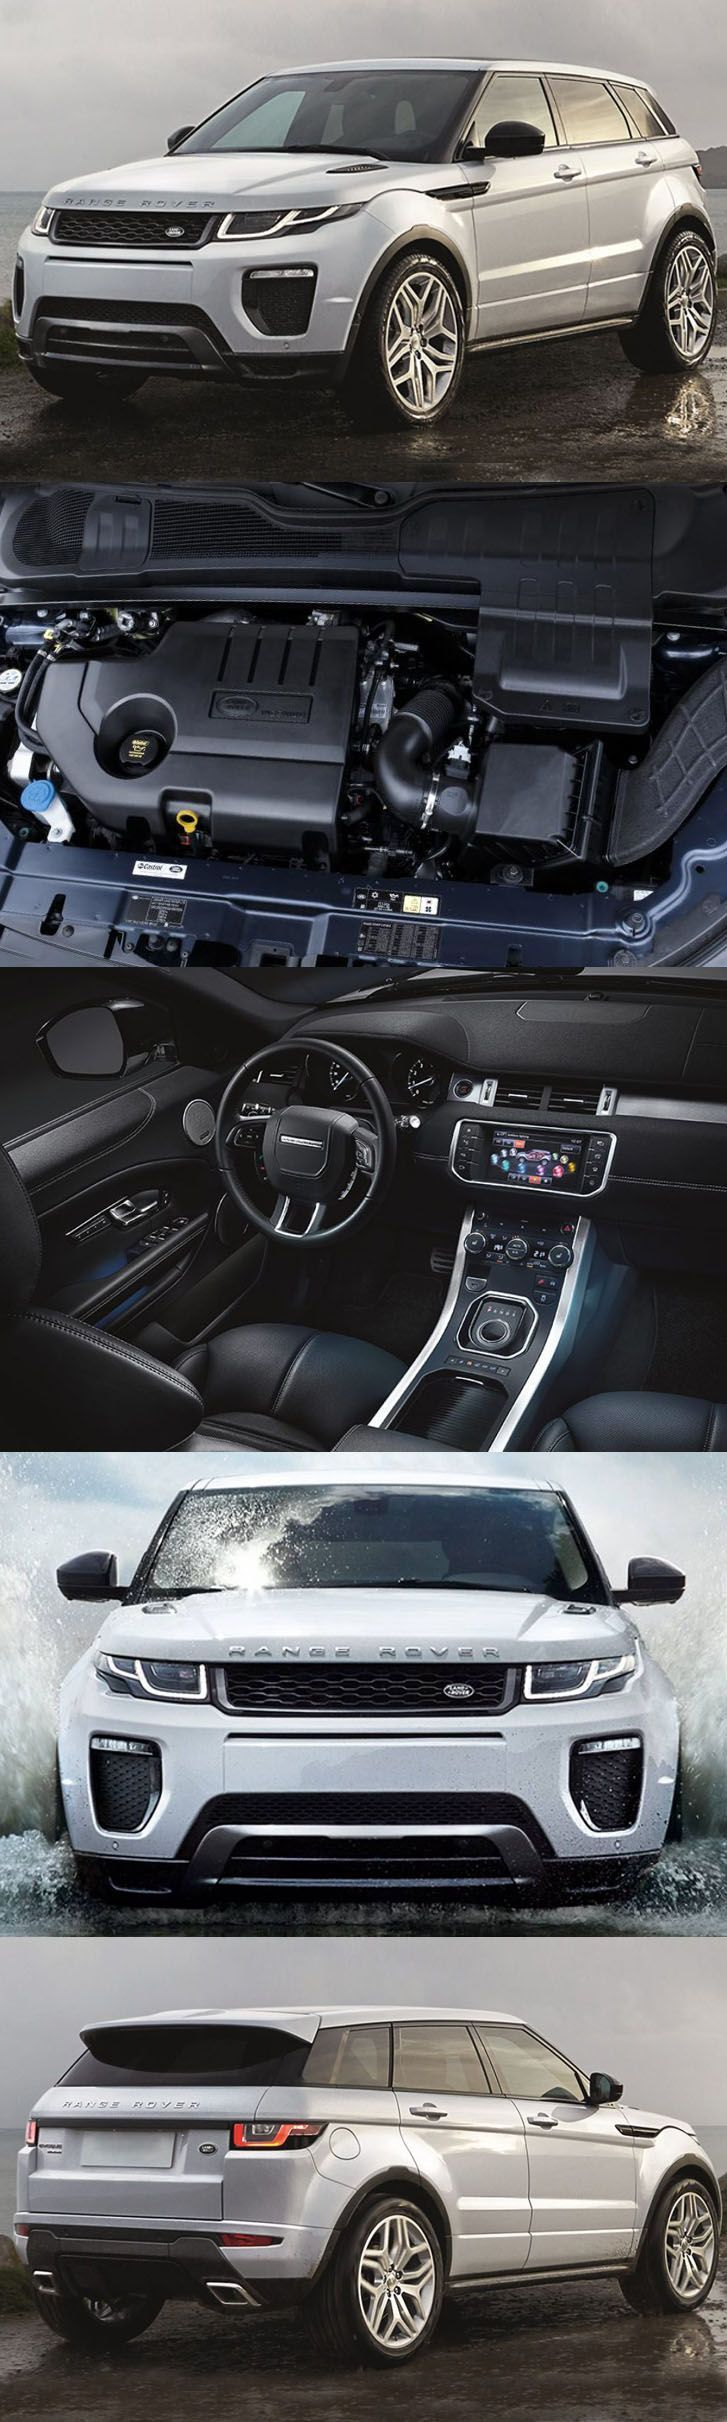 awesome luxury car service best photos https://www.amazon.co.uk/Baby-Car-Mirror-Shatterproof-Installation/dp/B06XHG6SSY